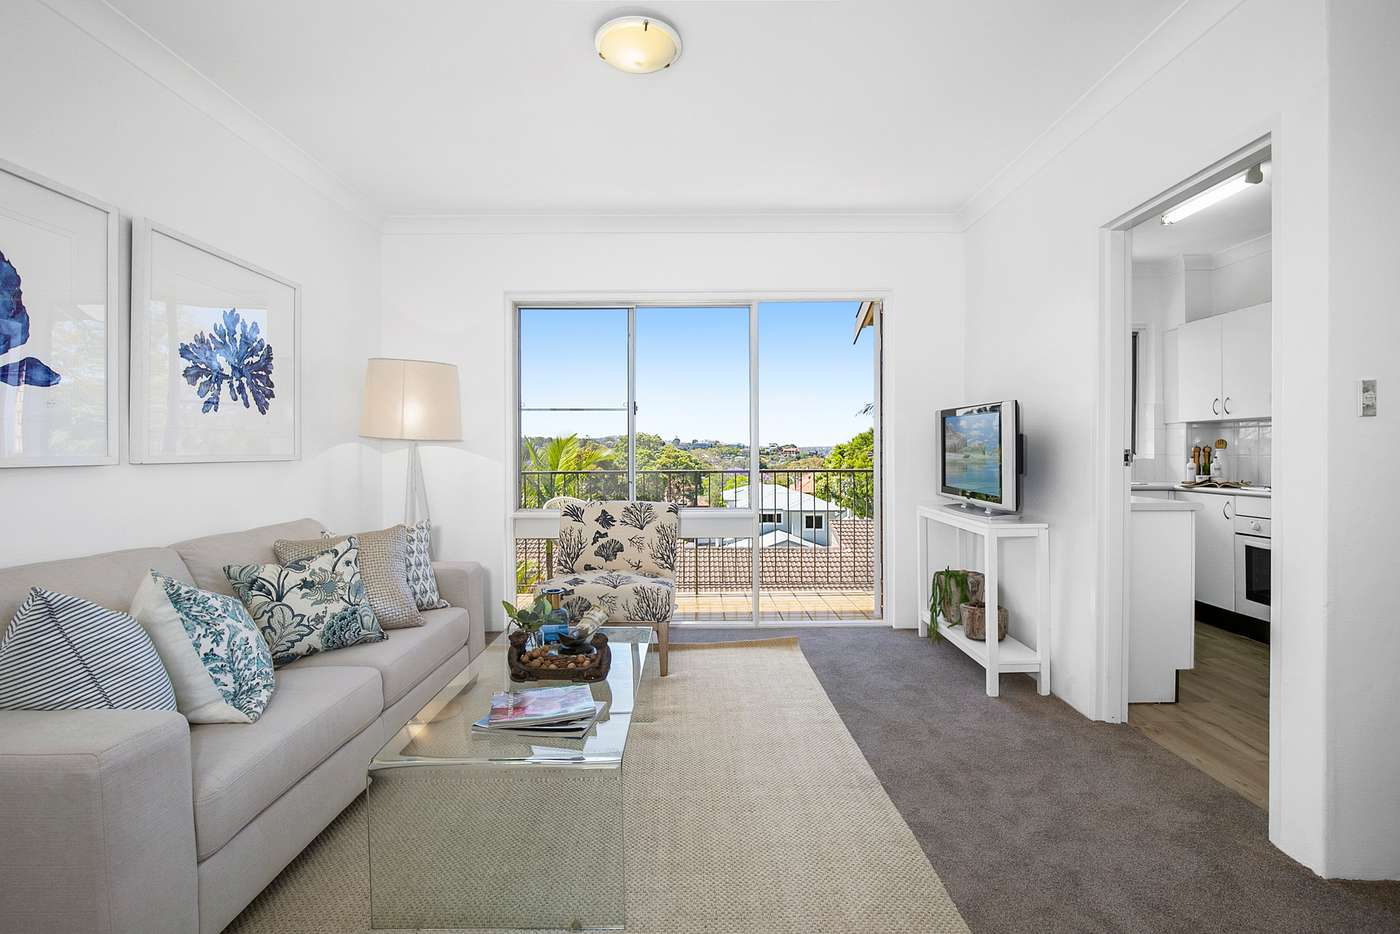 Main view of Homely apartment listing, 11/14-18 Angle Street, Balgowlah NSW 2093